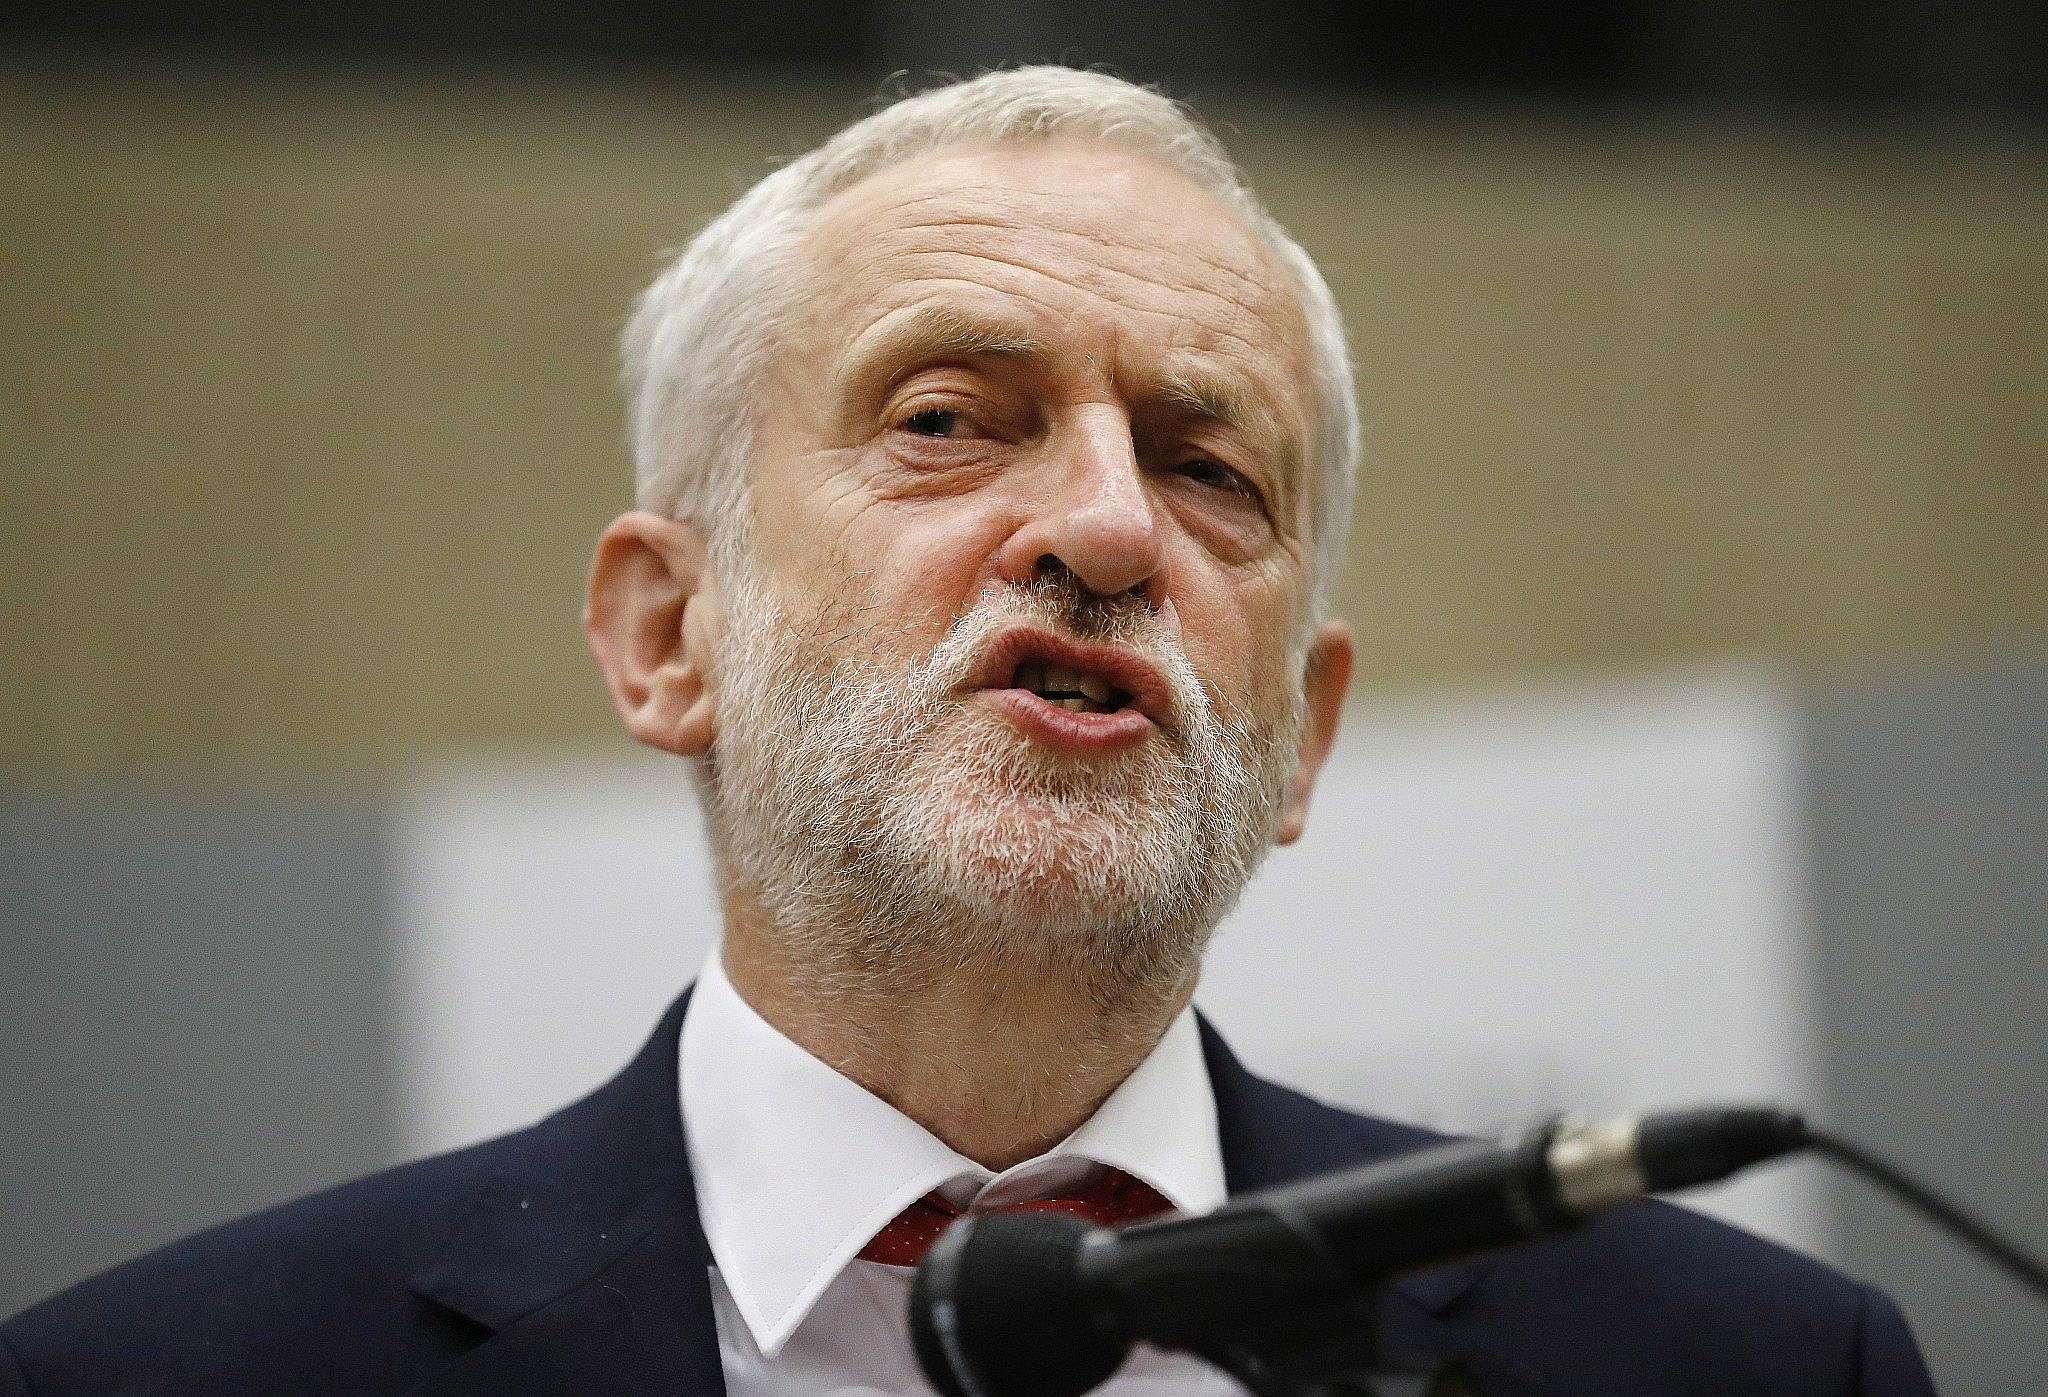 Amid anti-Semitism scandal, UK's Corbyn criticized over Seder with far-left group